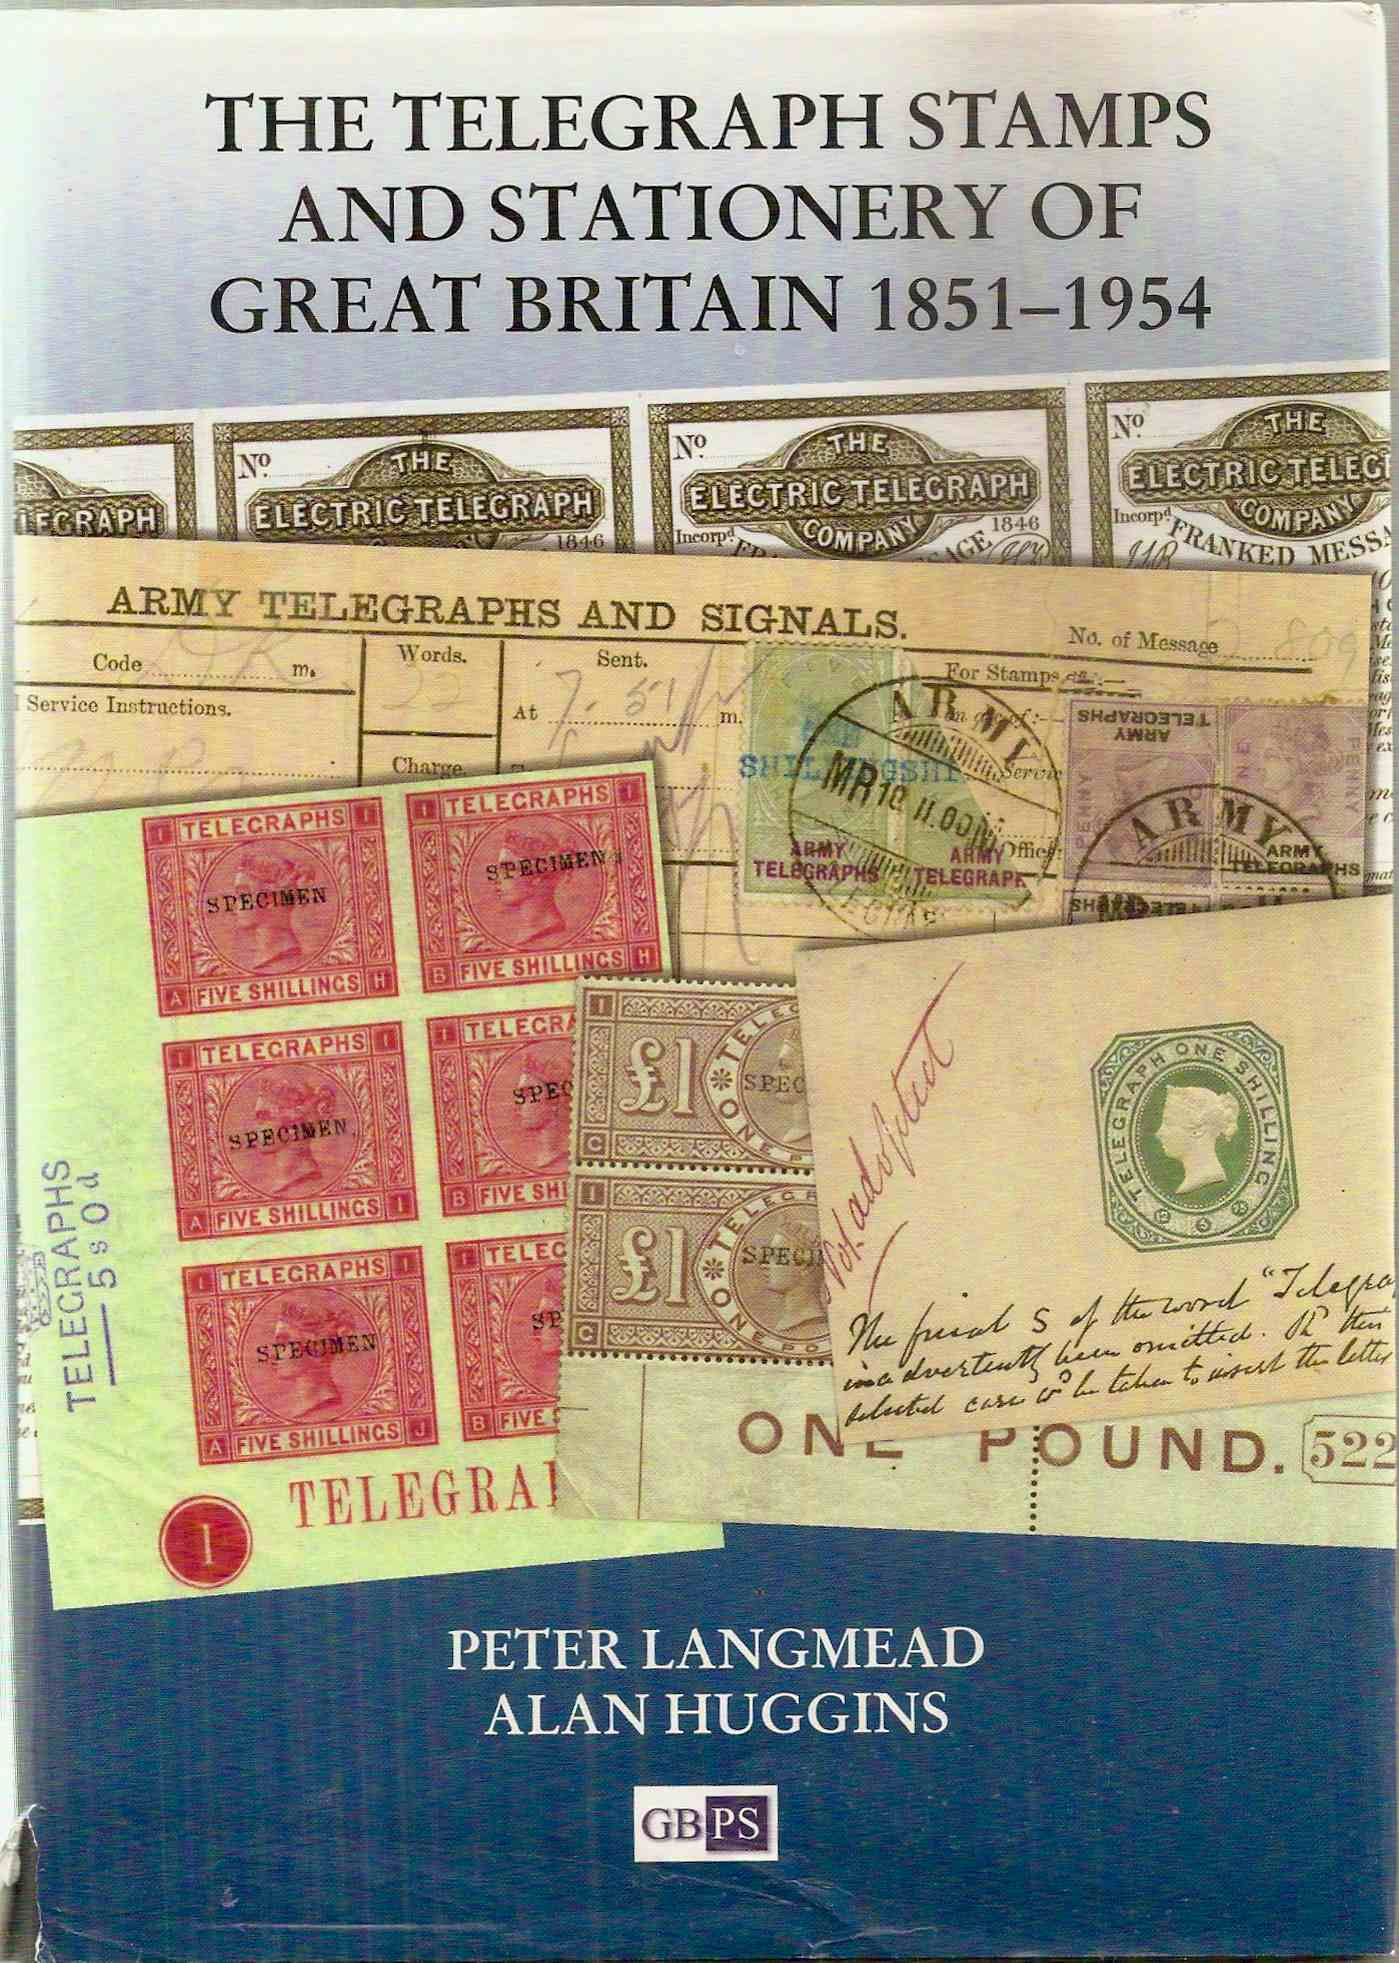 TELEGRAPH STAMPS & STATIONERY OF GREAT BRITAIN 1851-1954, Langmead & Huggins, 2003 (hardback)